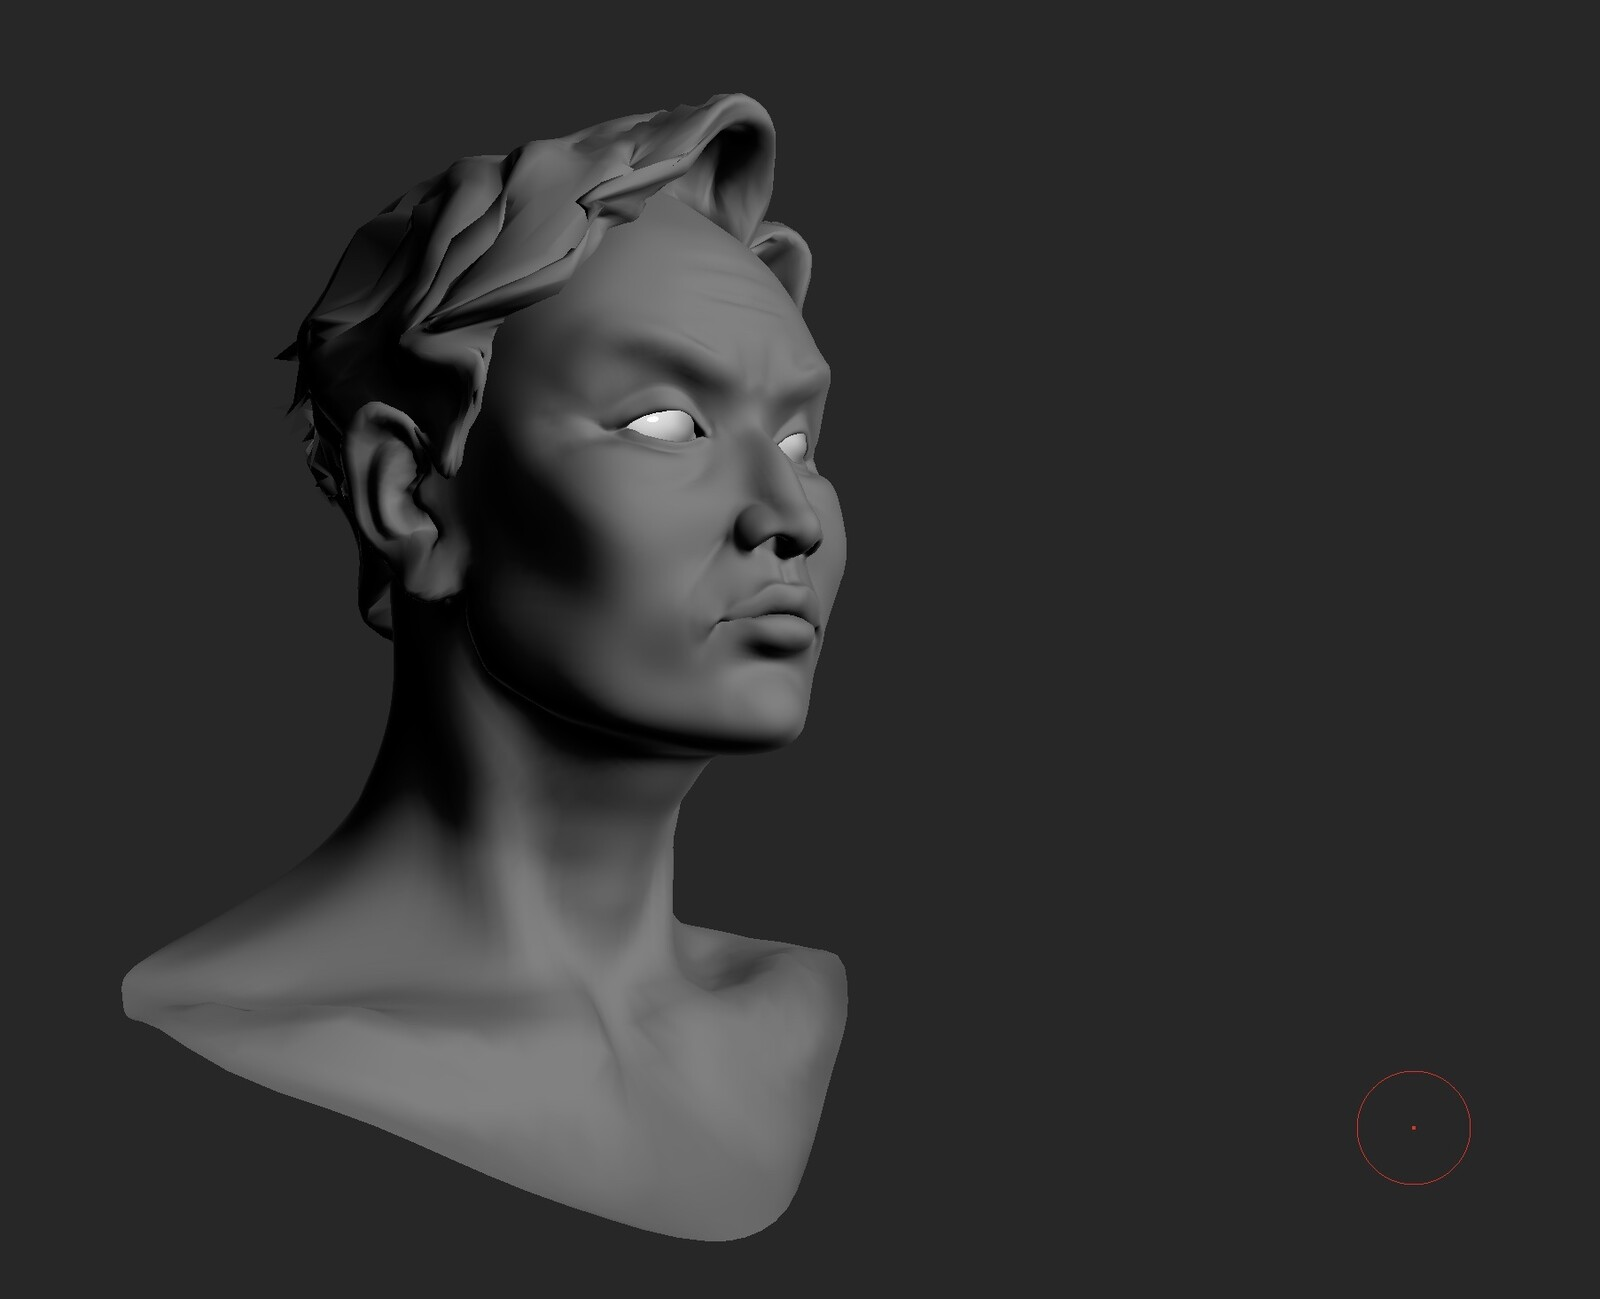 Here's the 3D model of Aditya's face that I posed and lit for reference!   For a more detailed process on how I made this bust, see this project: https://naladraws.artstation.com/projects/q9ZA0P?album_id=2019373